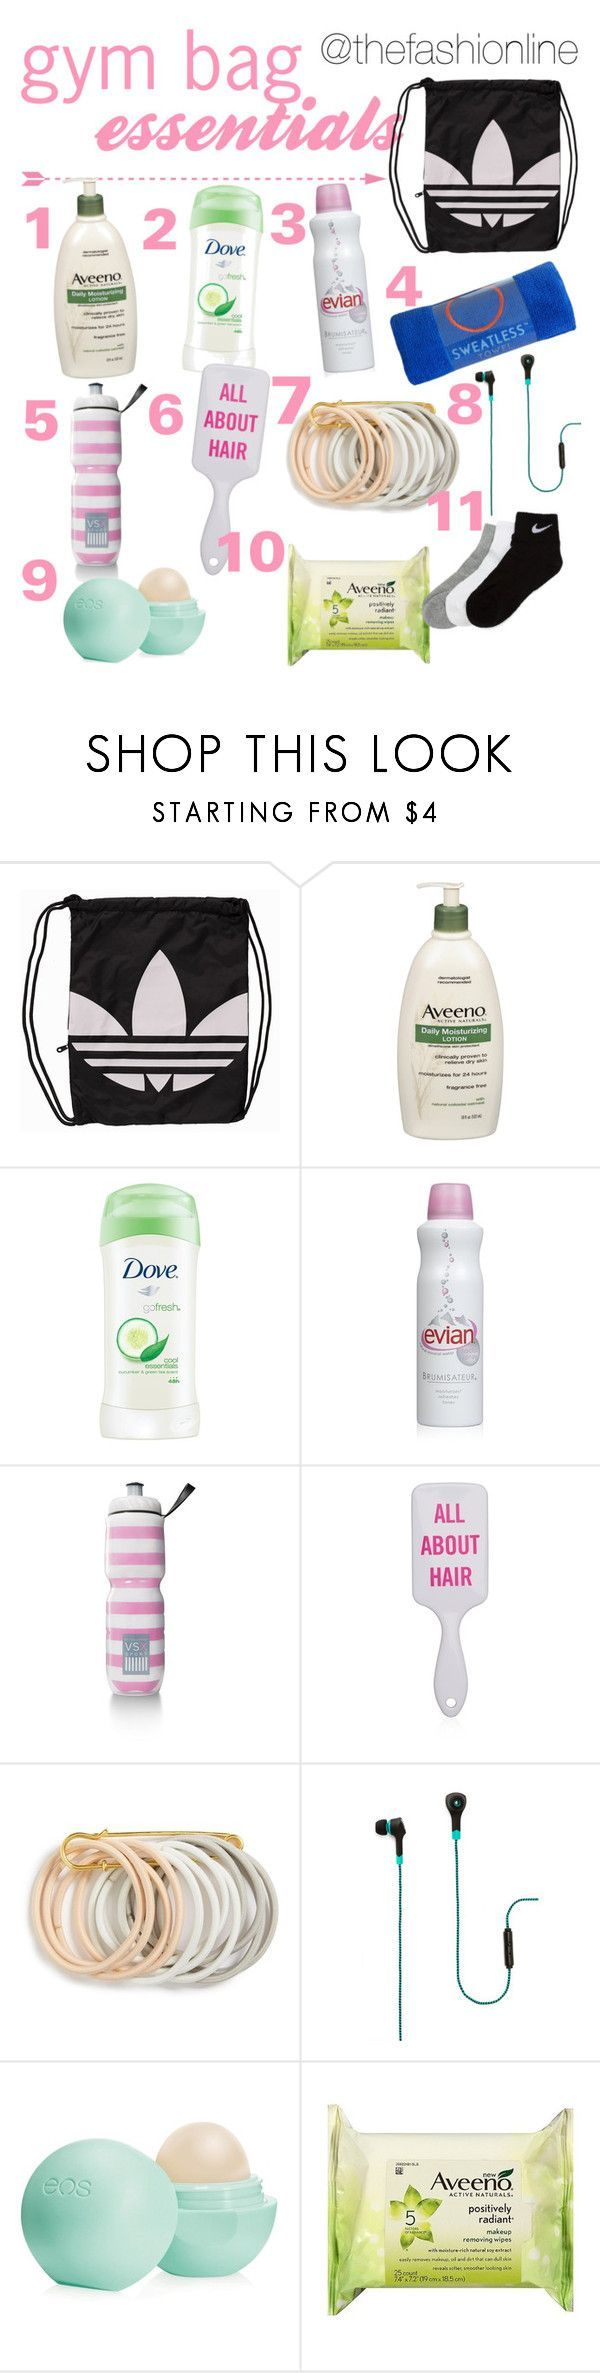 """""""What's In My Gym Bag"""" by thefashionline ❤ liked on Polyvore featuring adidas Originals, Aveeno, Dove, Victoria's Secret, Odeme, Merkury Innovations, Eos and NIKE - Tap the pin if you love super heroes too! Cause guess what? you will LOVE these super hero fitness shirts!"""